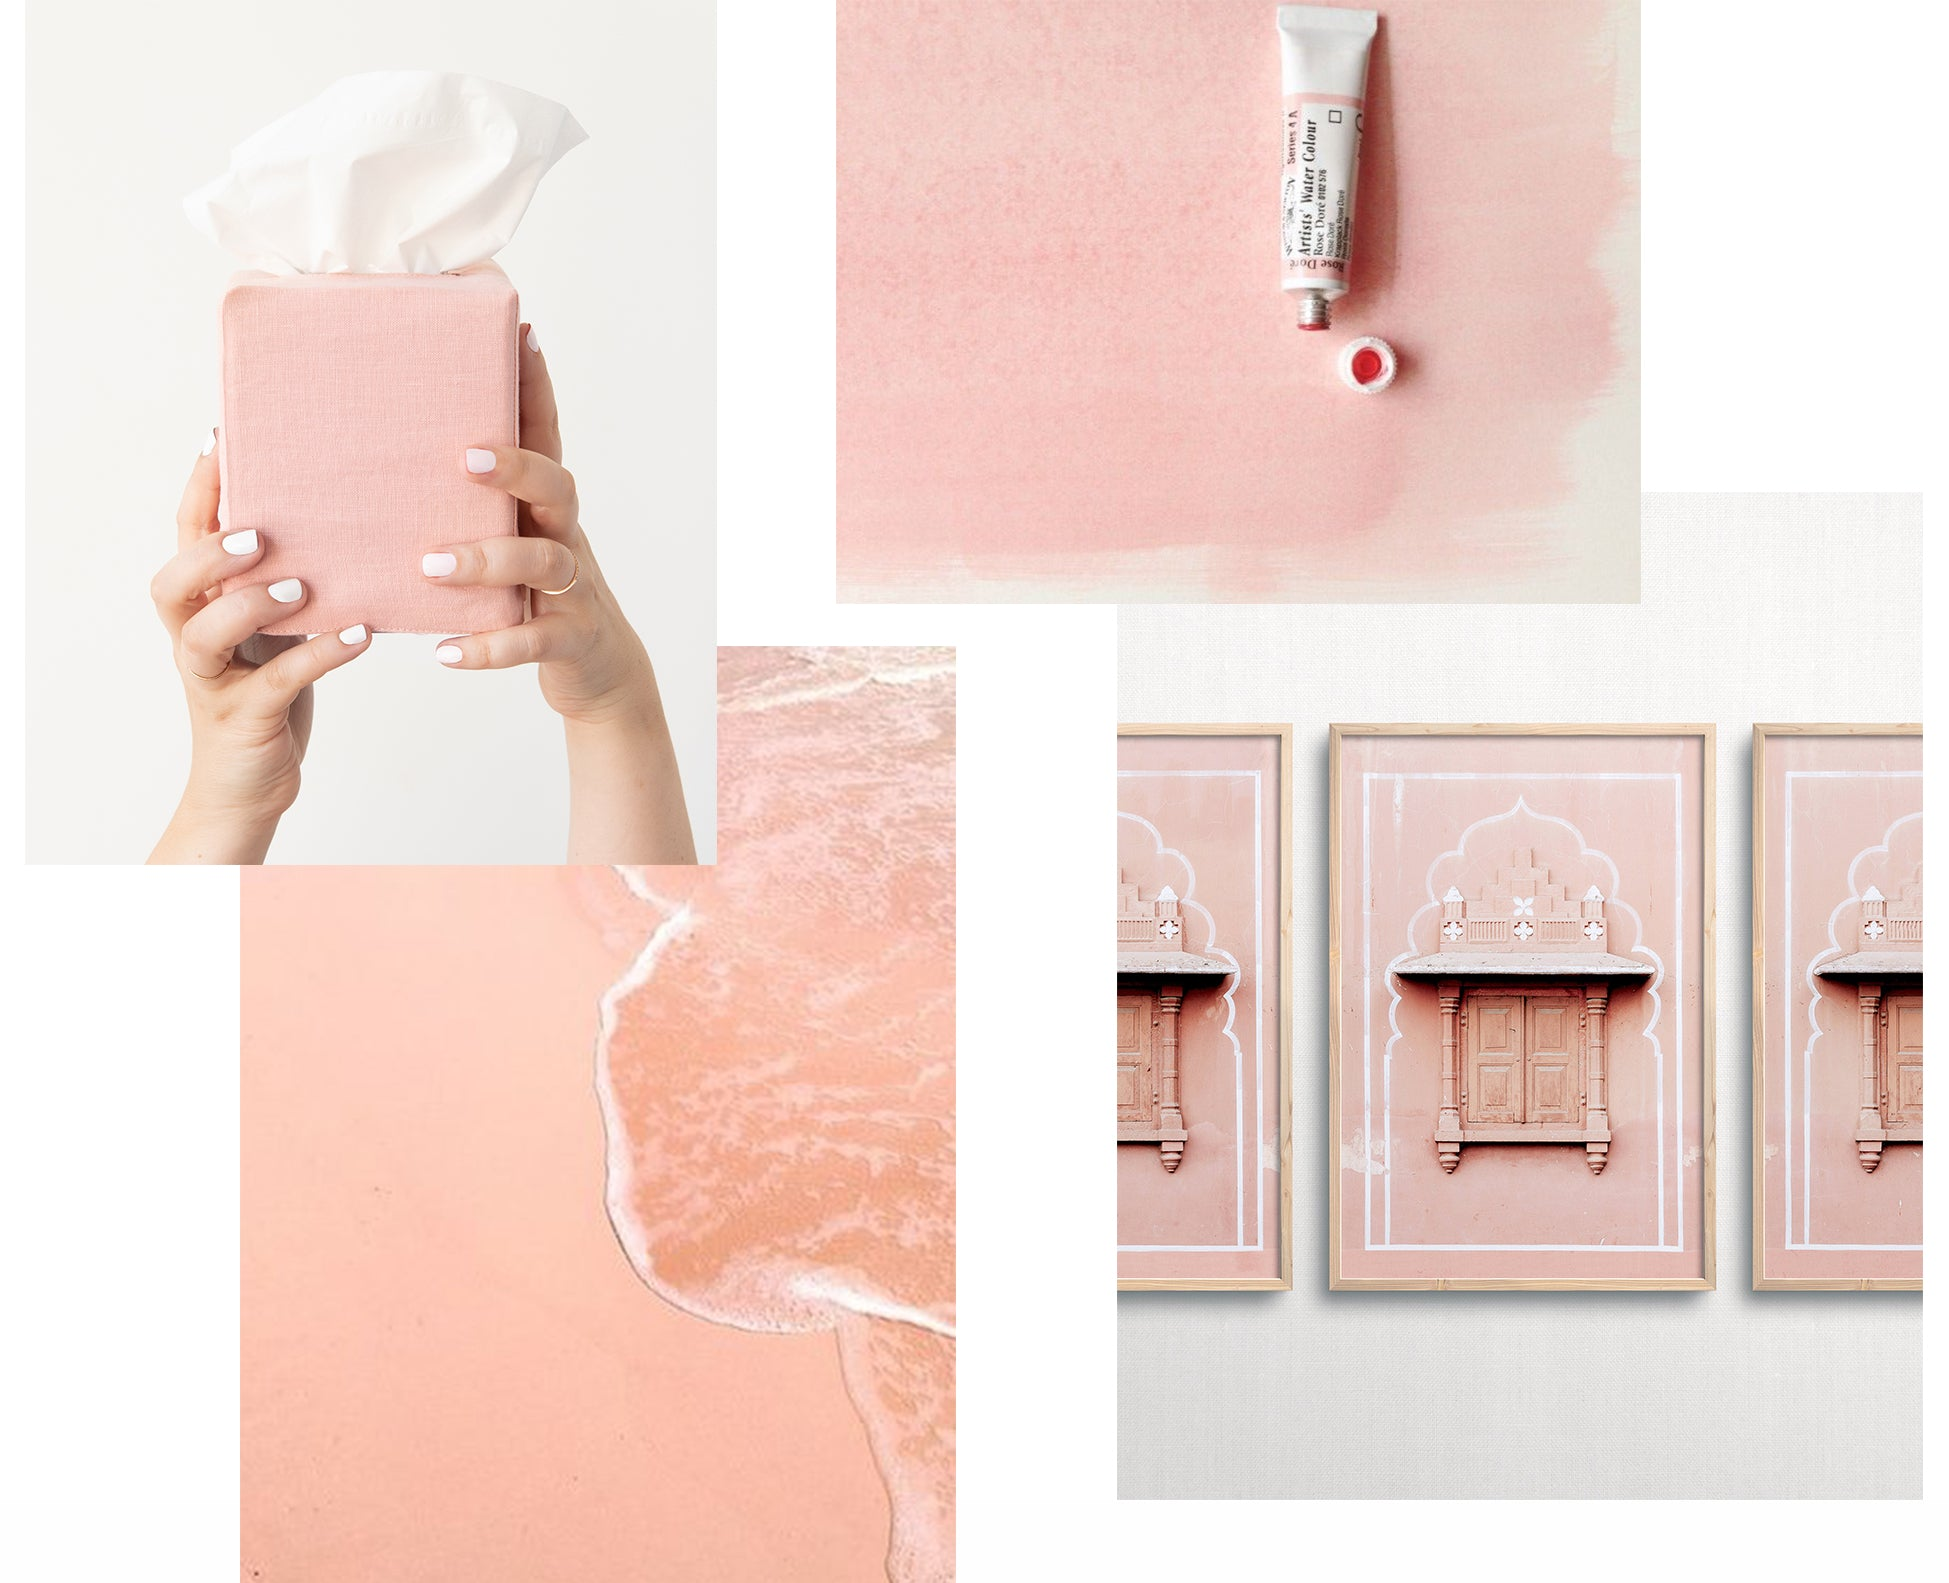 collage of pink images. Hands holding pink tissue box, framed photo of door.